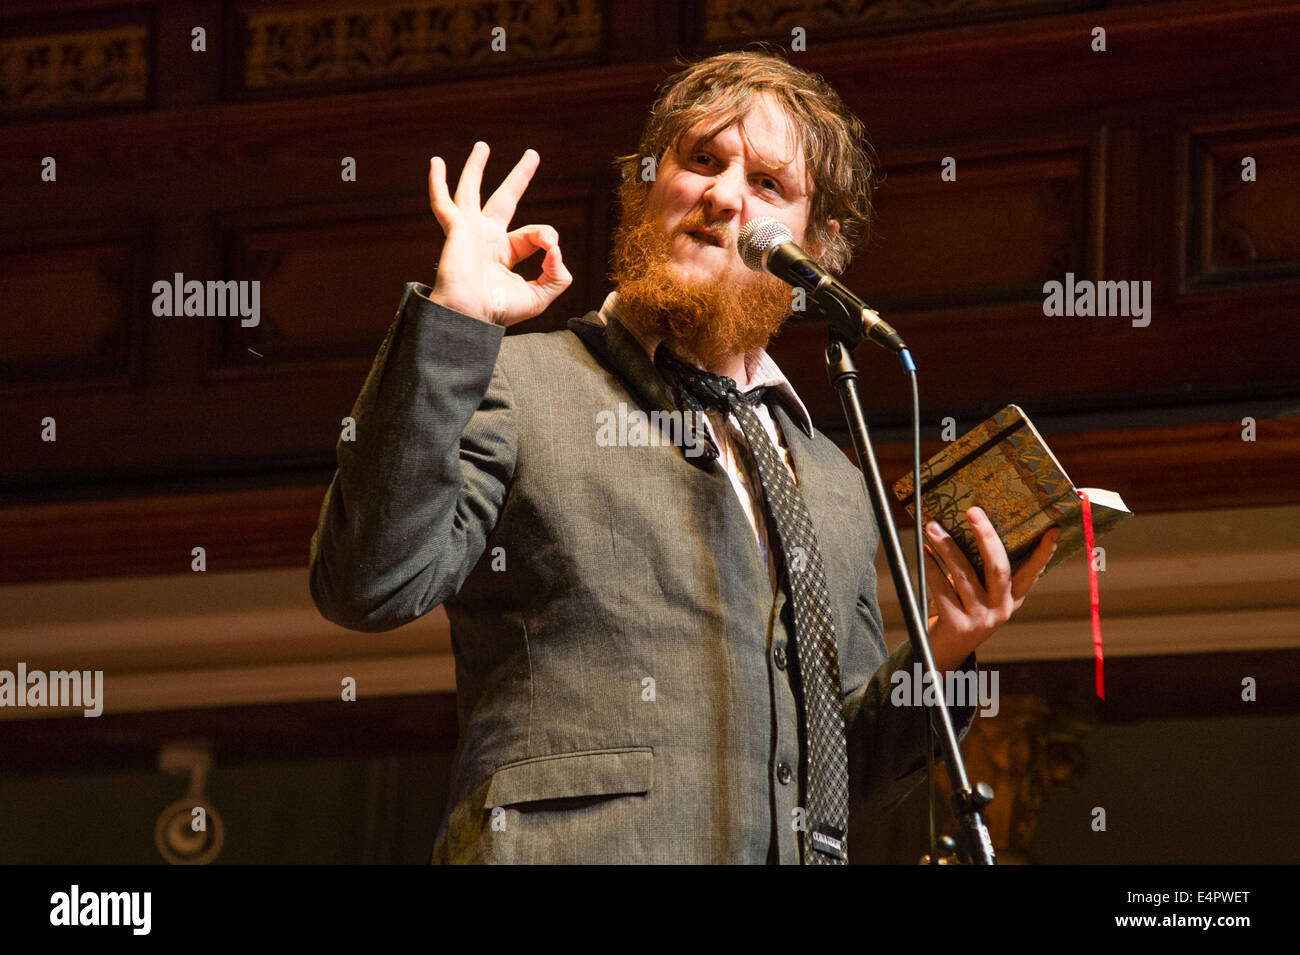 Comedian TIM KEY performing his show 'Freeze' at The Machynlleth Comedy Festival 2014 - Stock Image